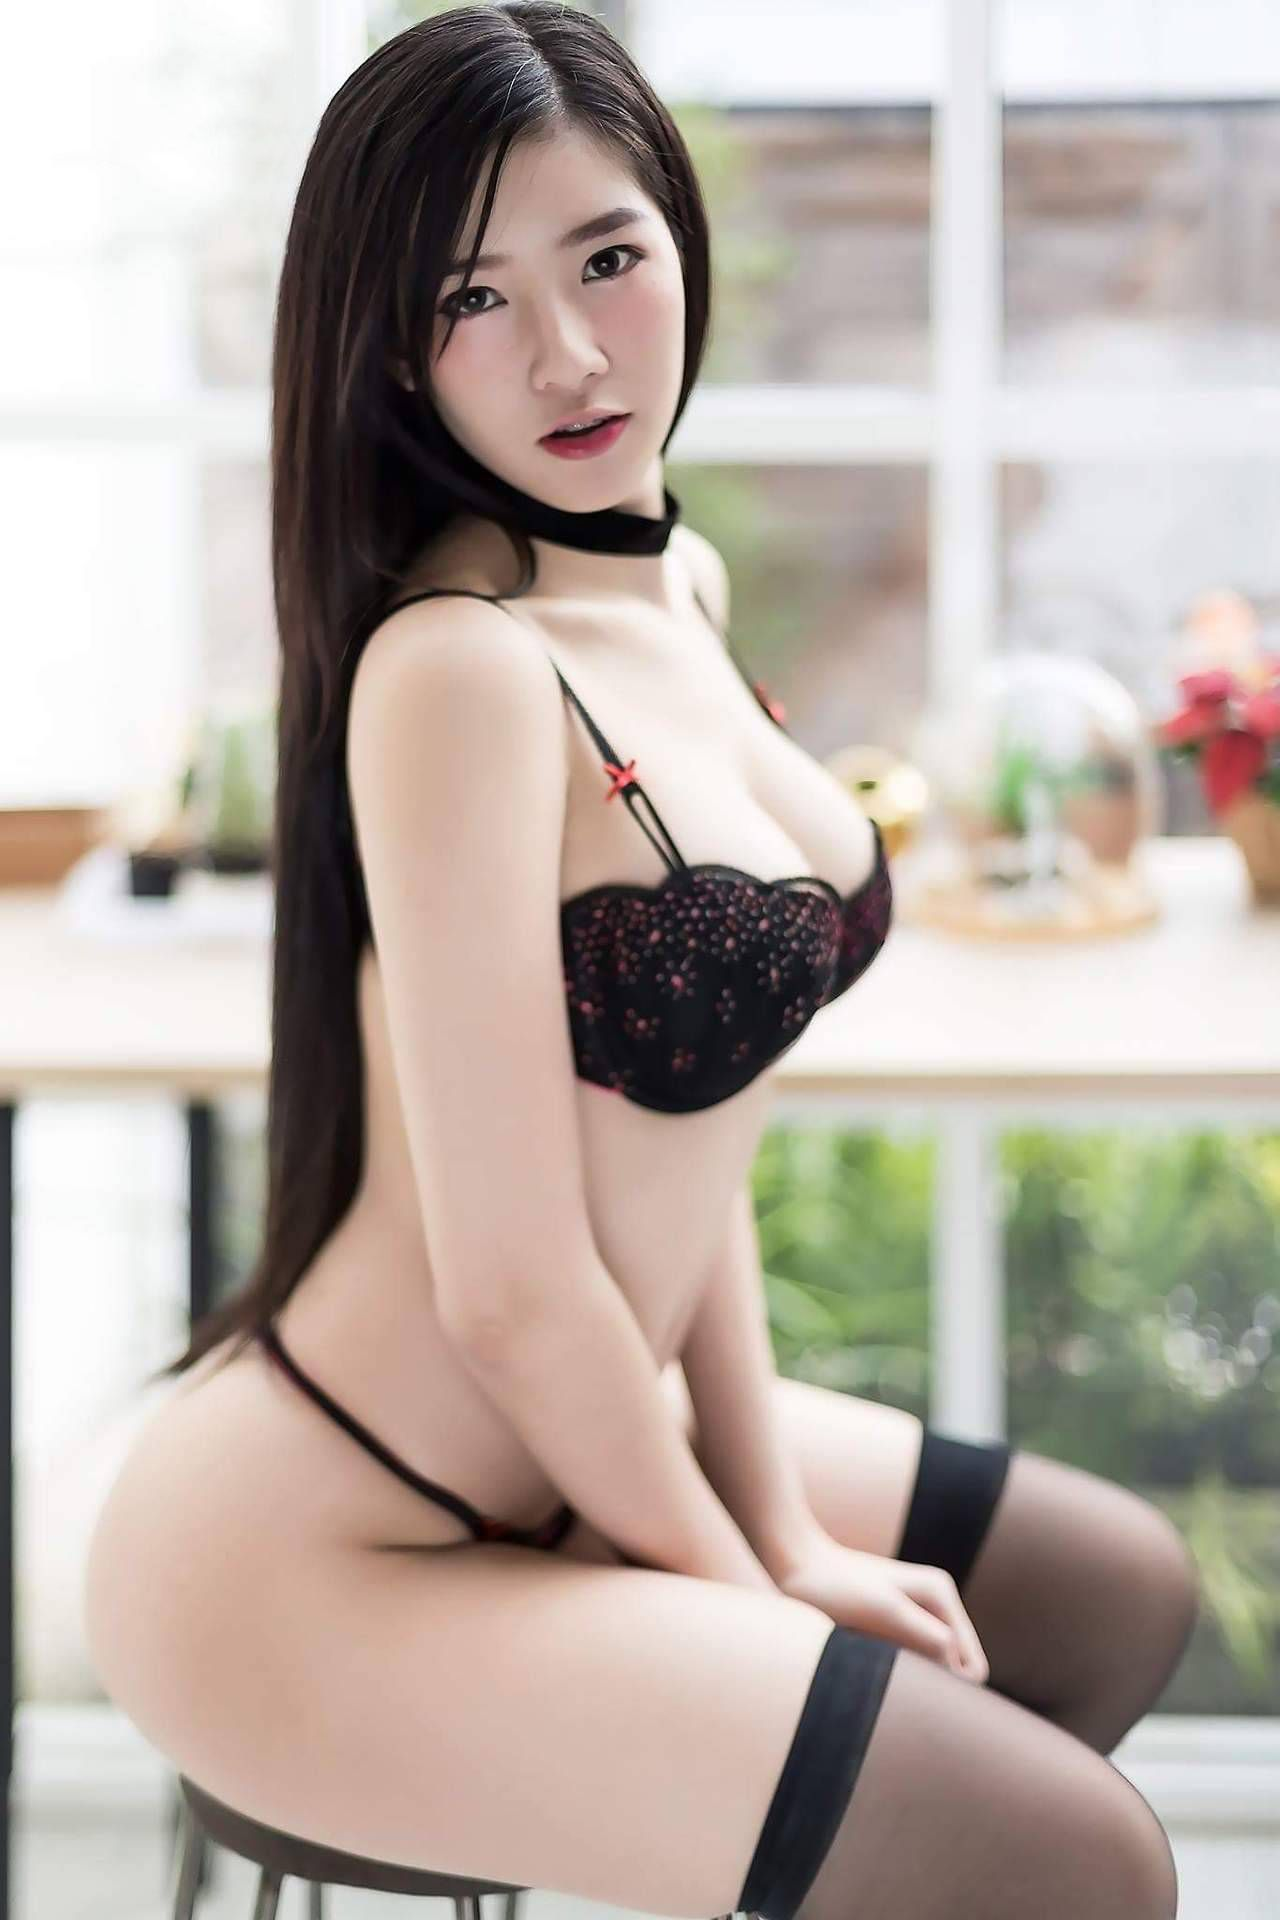 Self girl sexy pic asian